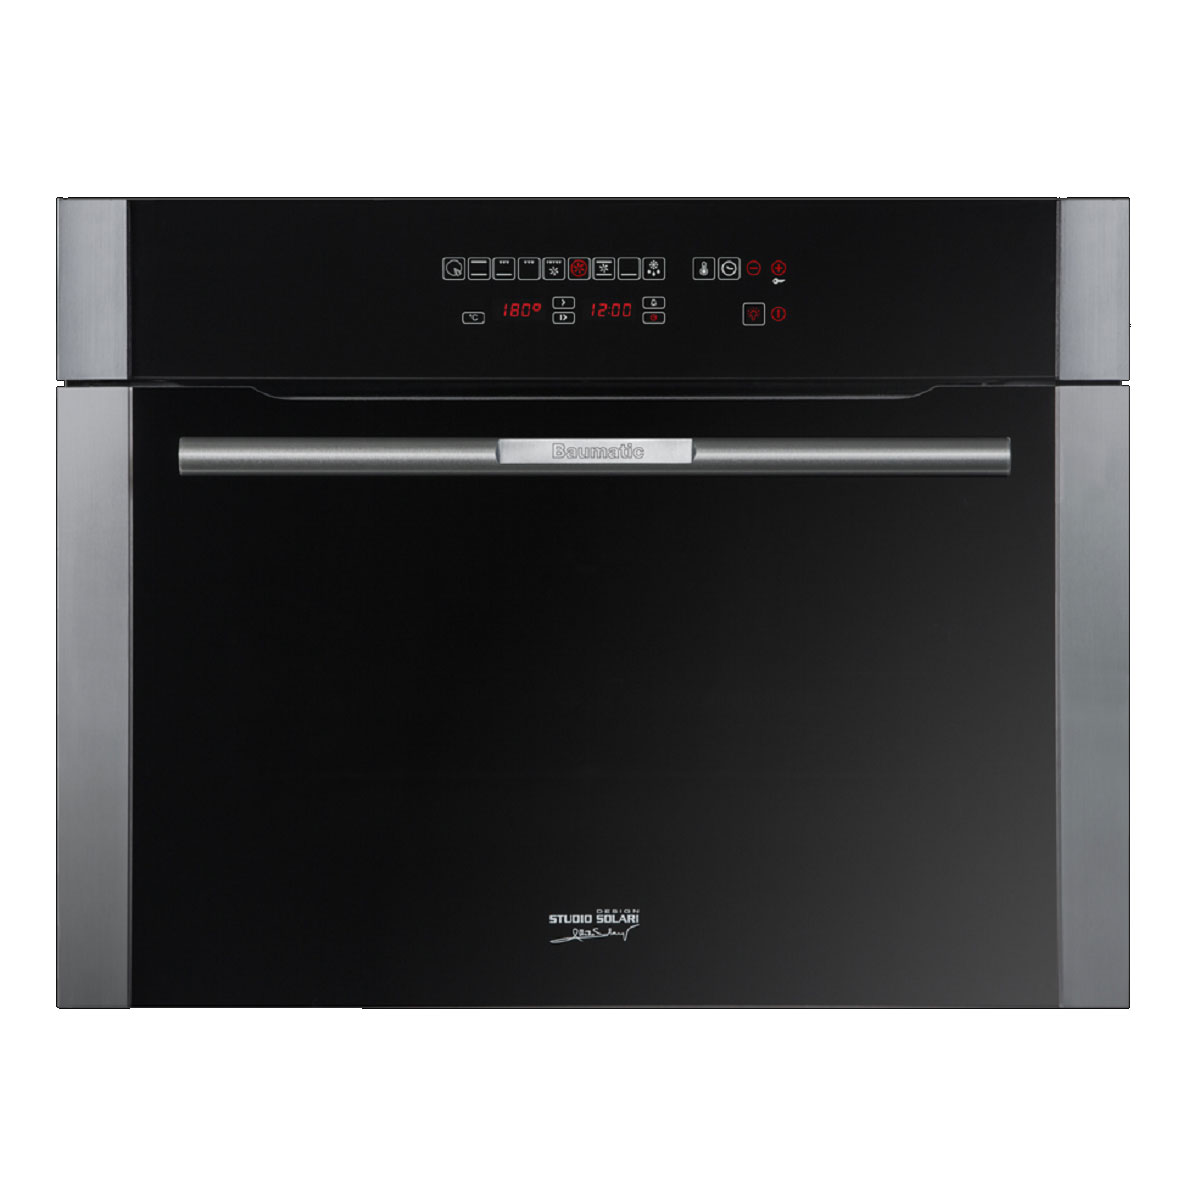 Baumatic BSO45 600mm Compact Multifunction Oven 26967